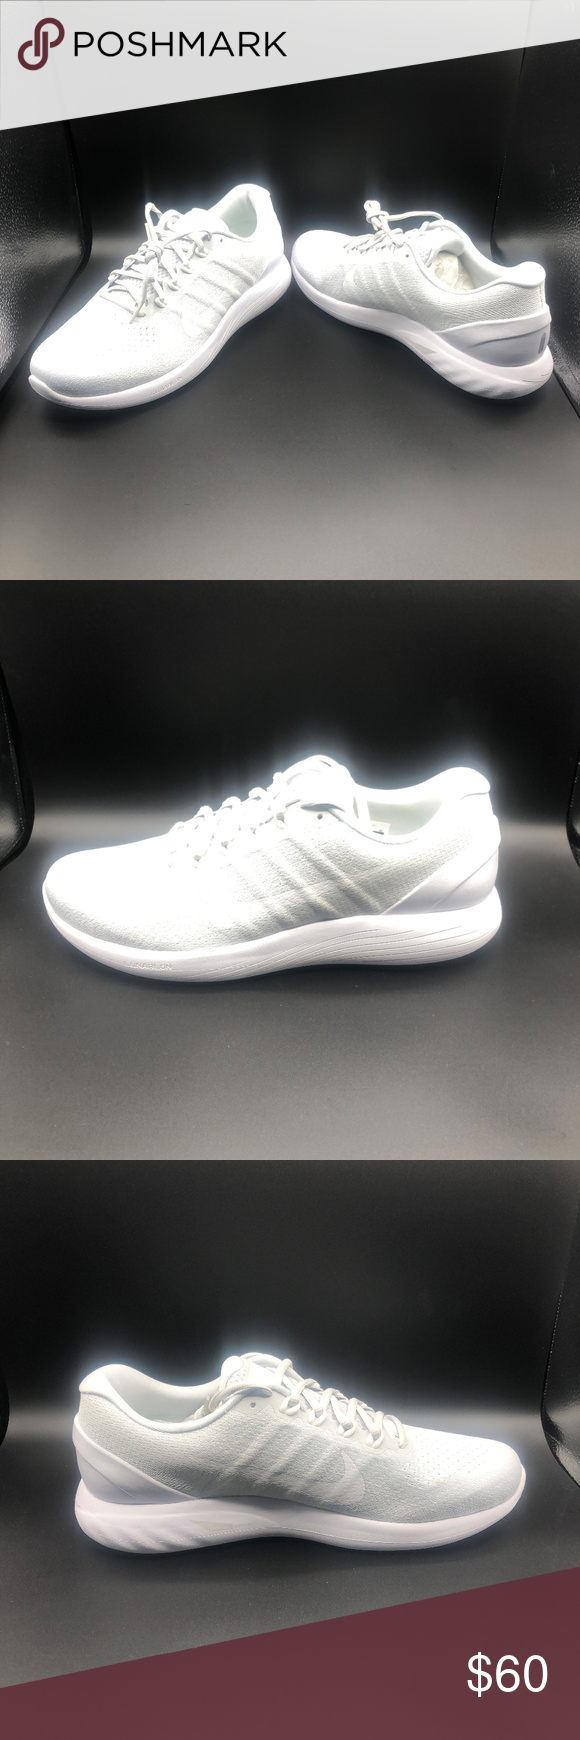 137b2ba94476 Men s Nike Lunarglide 9 Pure Platinum White Men s Nike Lunarglide 9 Pure  Platinum White Running Shoes